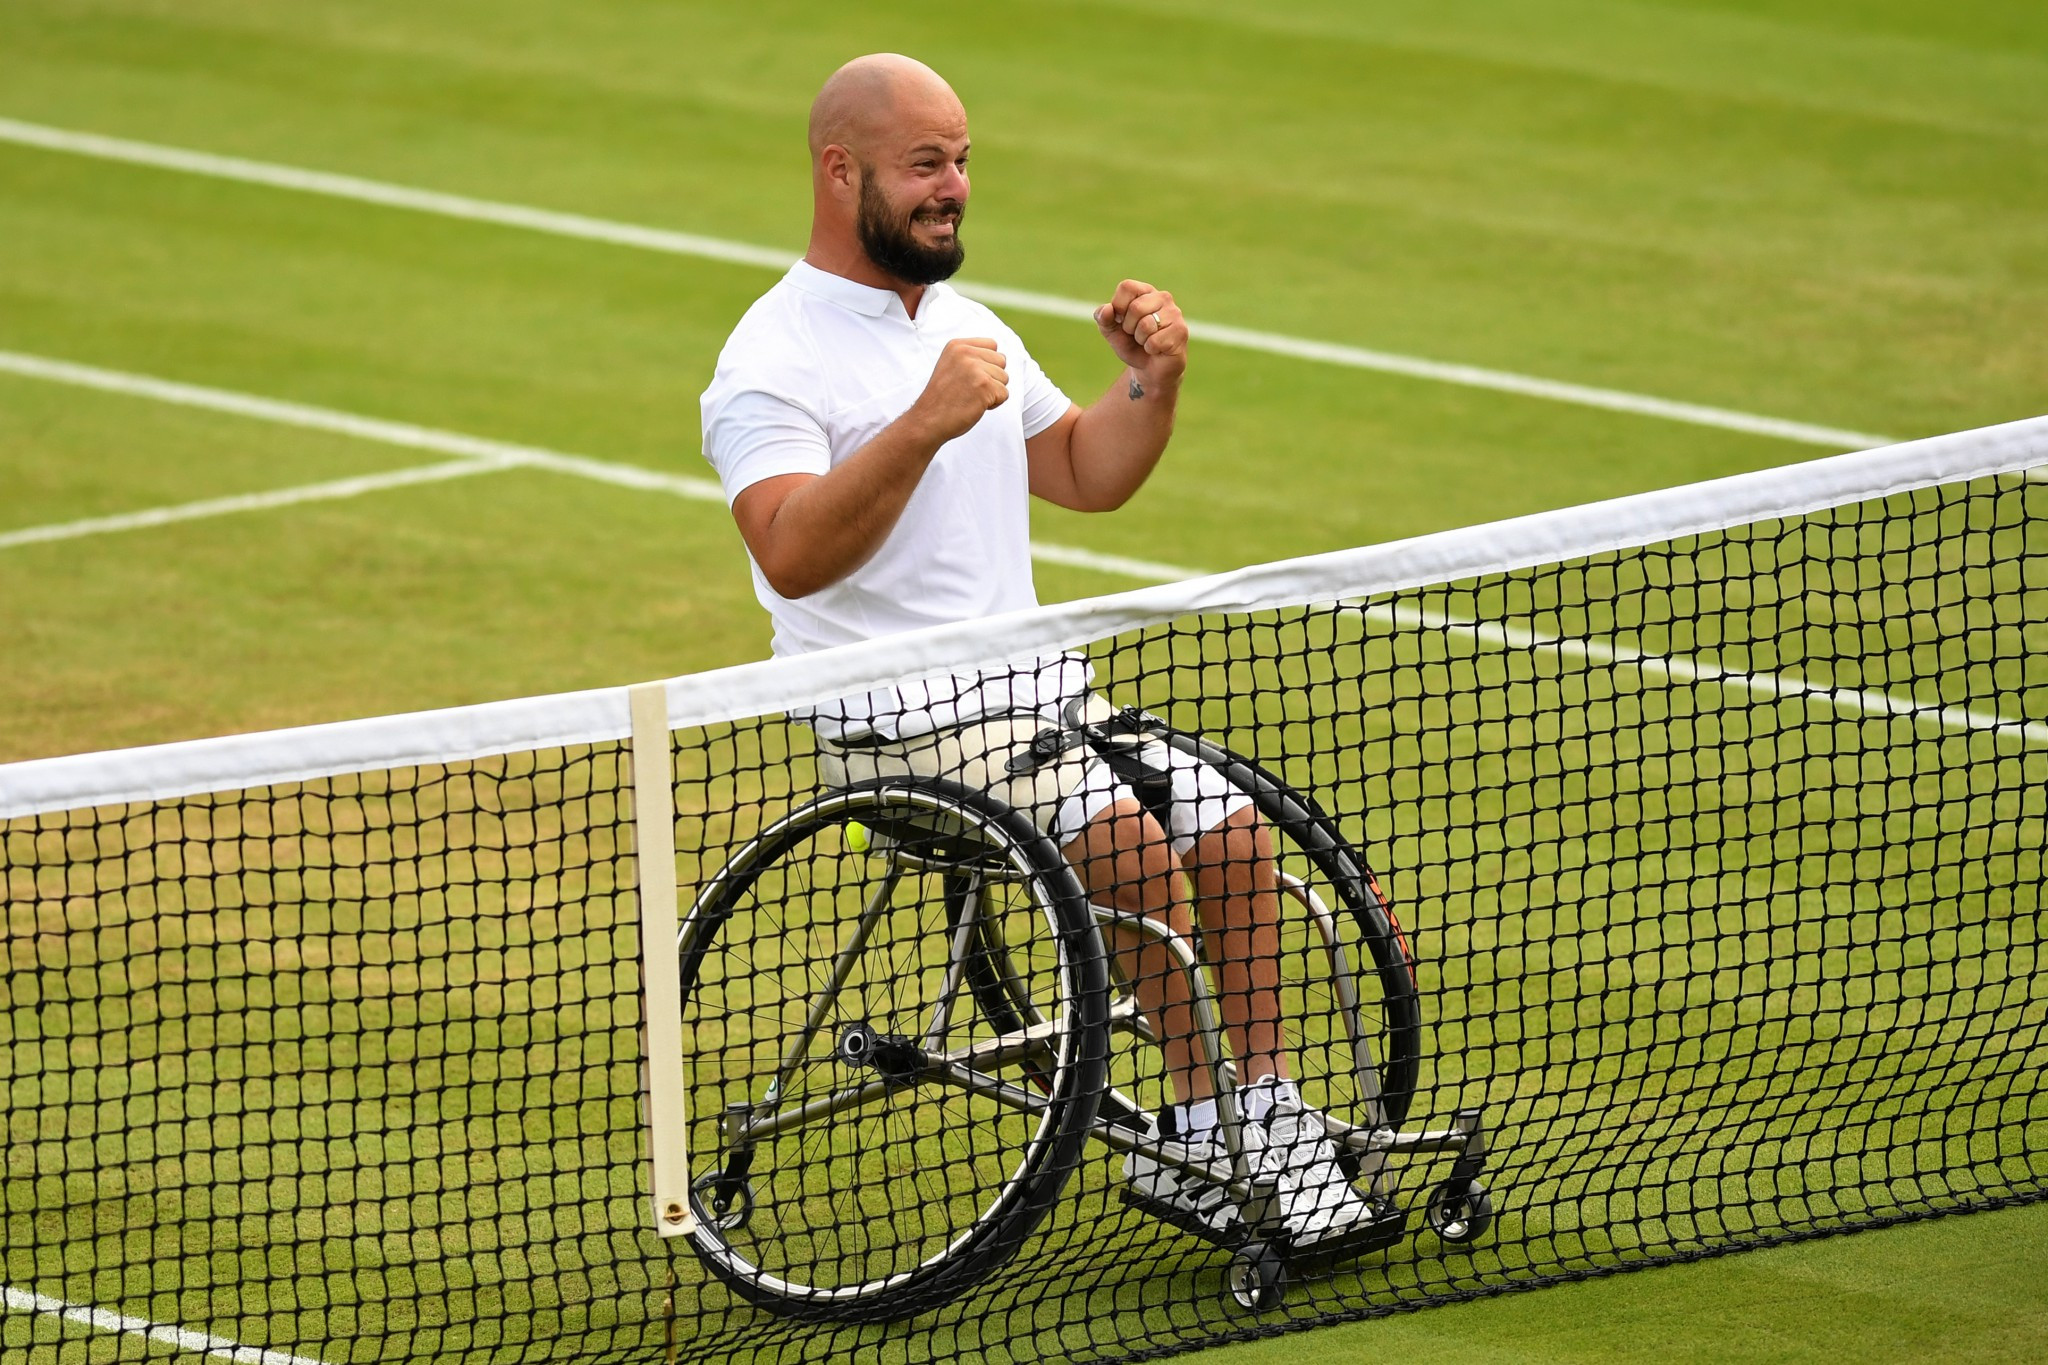 Stefan Olsson is shortlisted for the July award after his Wimbledon victory ©Getty Images